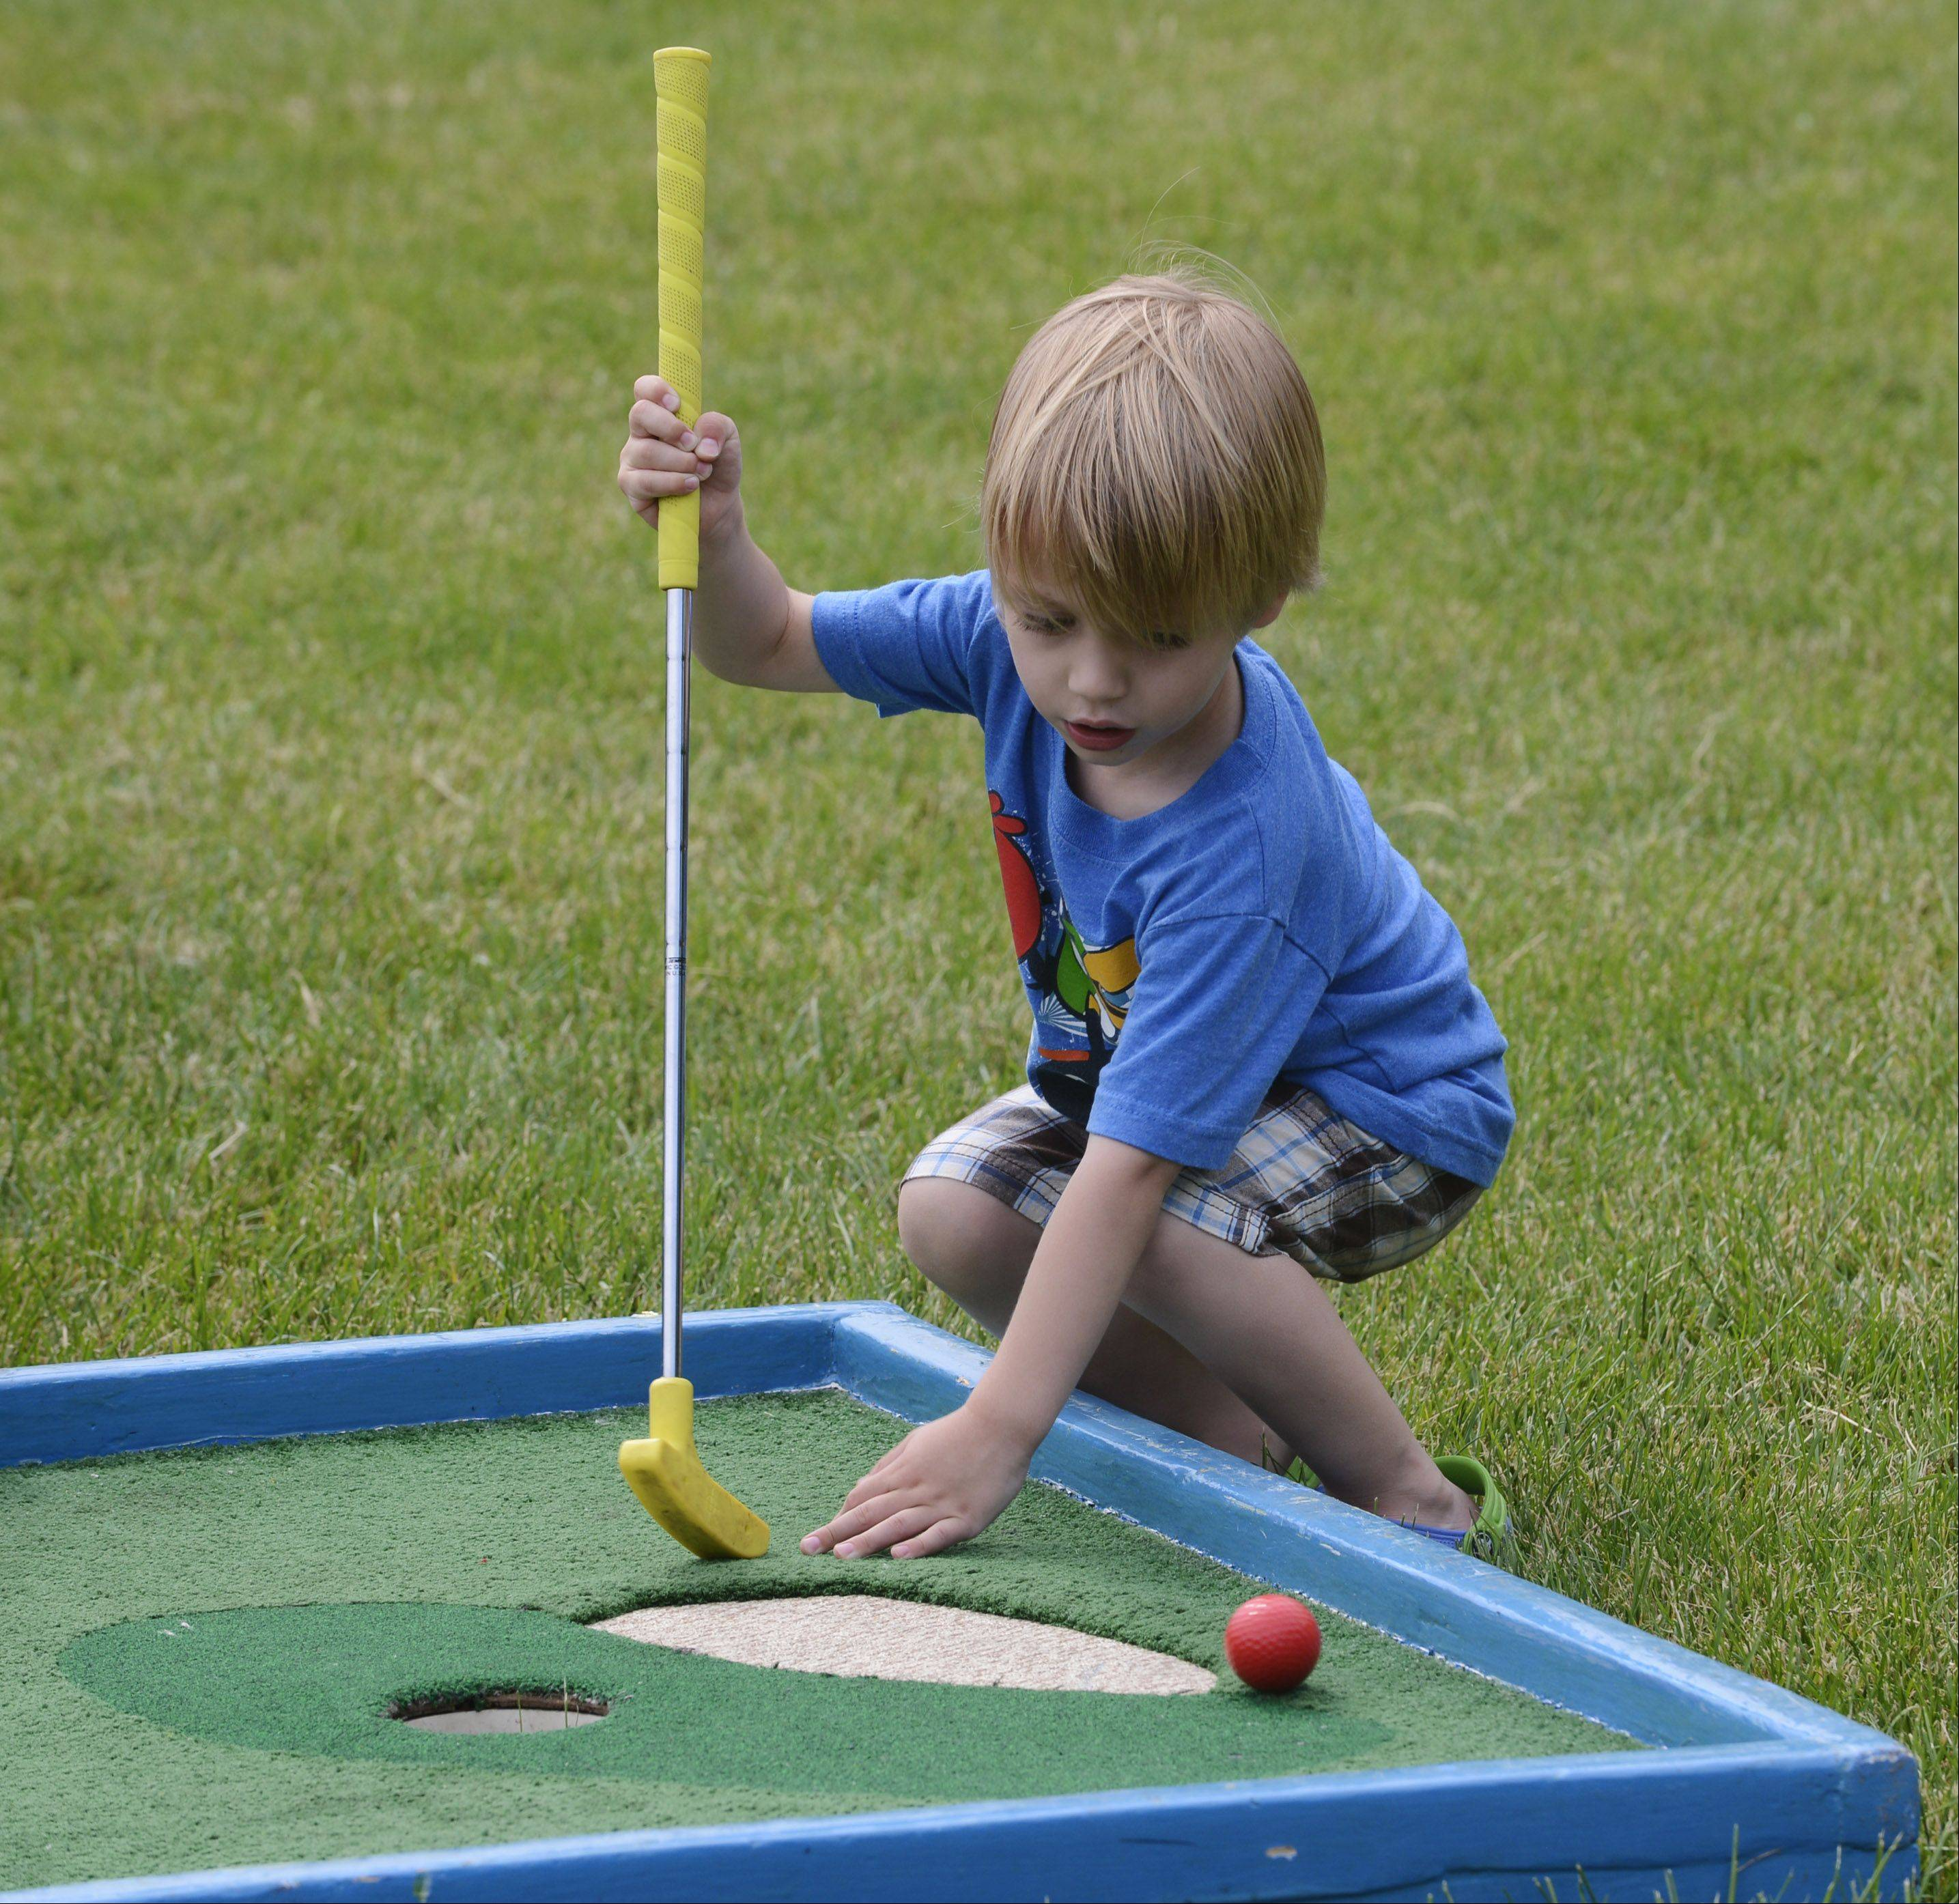 Pacific Toll, 3, of Prospect Heights gets ready to hit his ball off the edge of a sand trap while playing miniature golf at the Prospect Heights Summer Block Party at Lions Park Saturday.